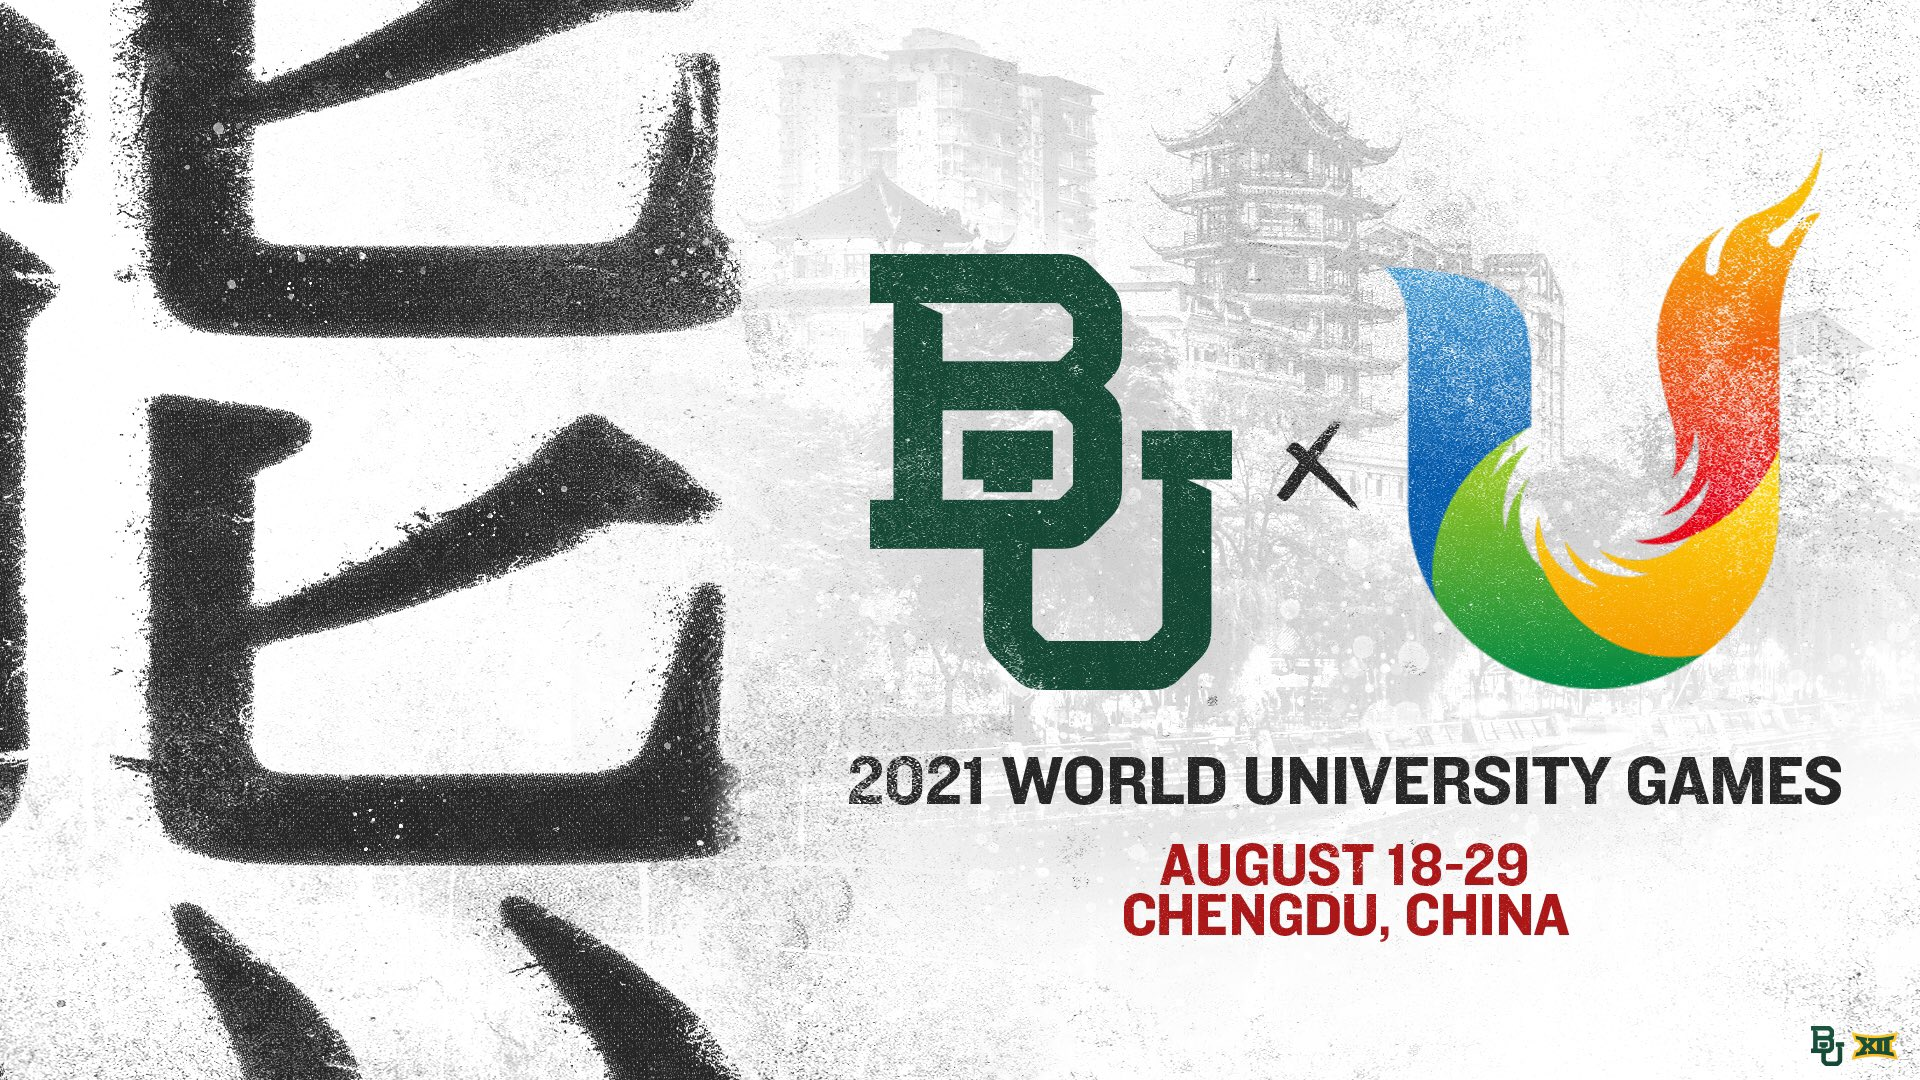 Baylor Bears to represent United States in Chengdu 2021 men's basketball tournament